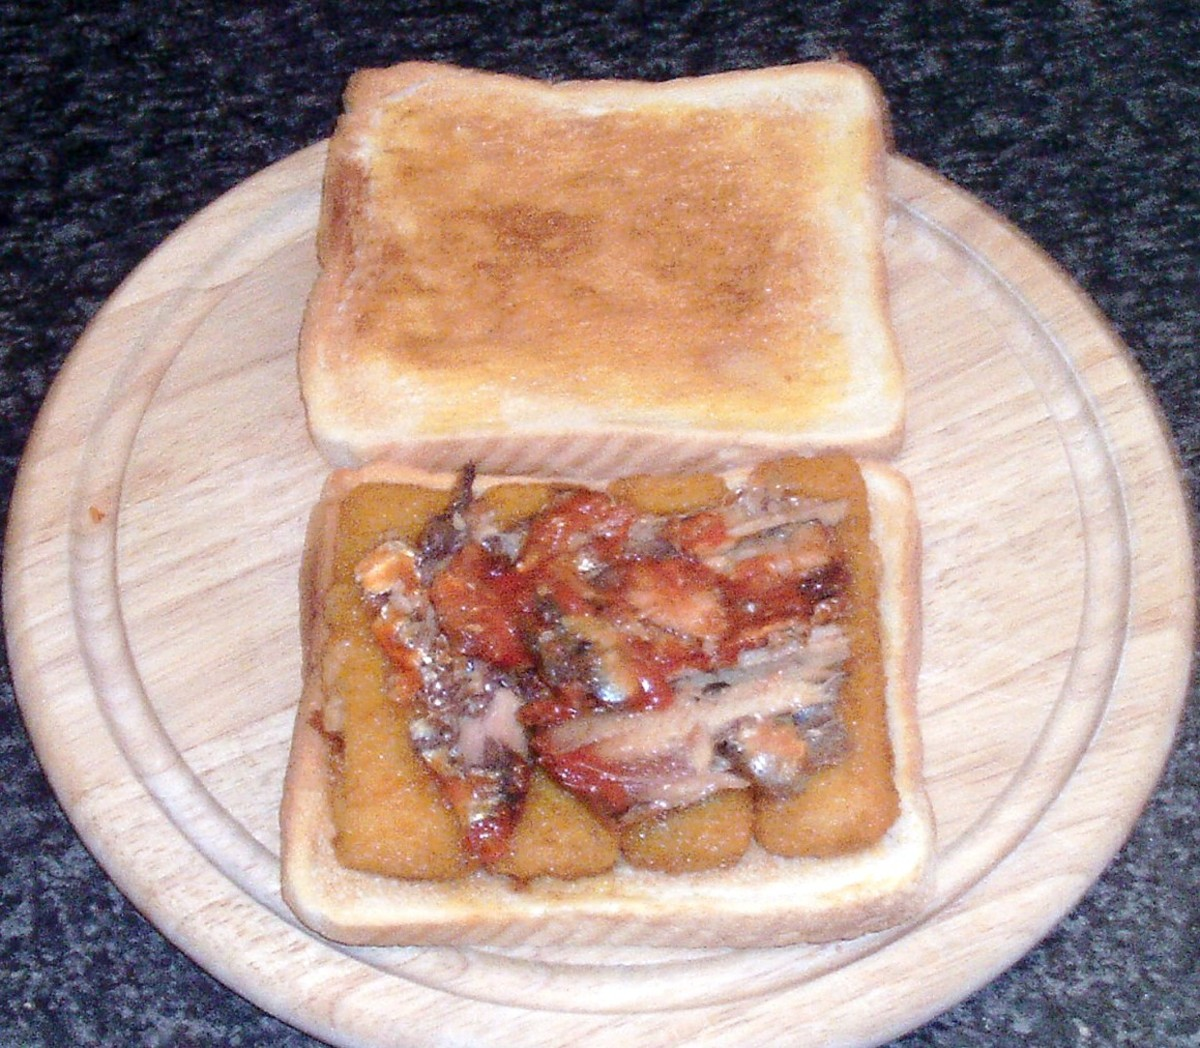 Canned sardines spread on fish fingers